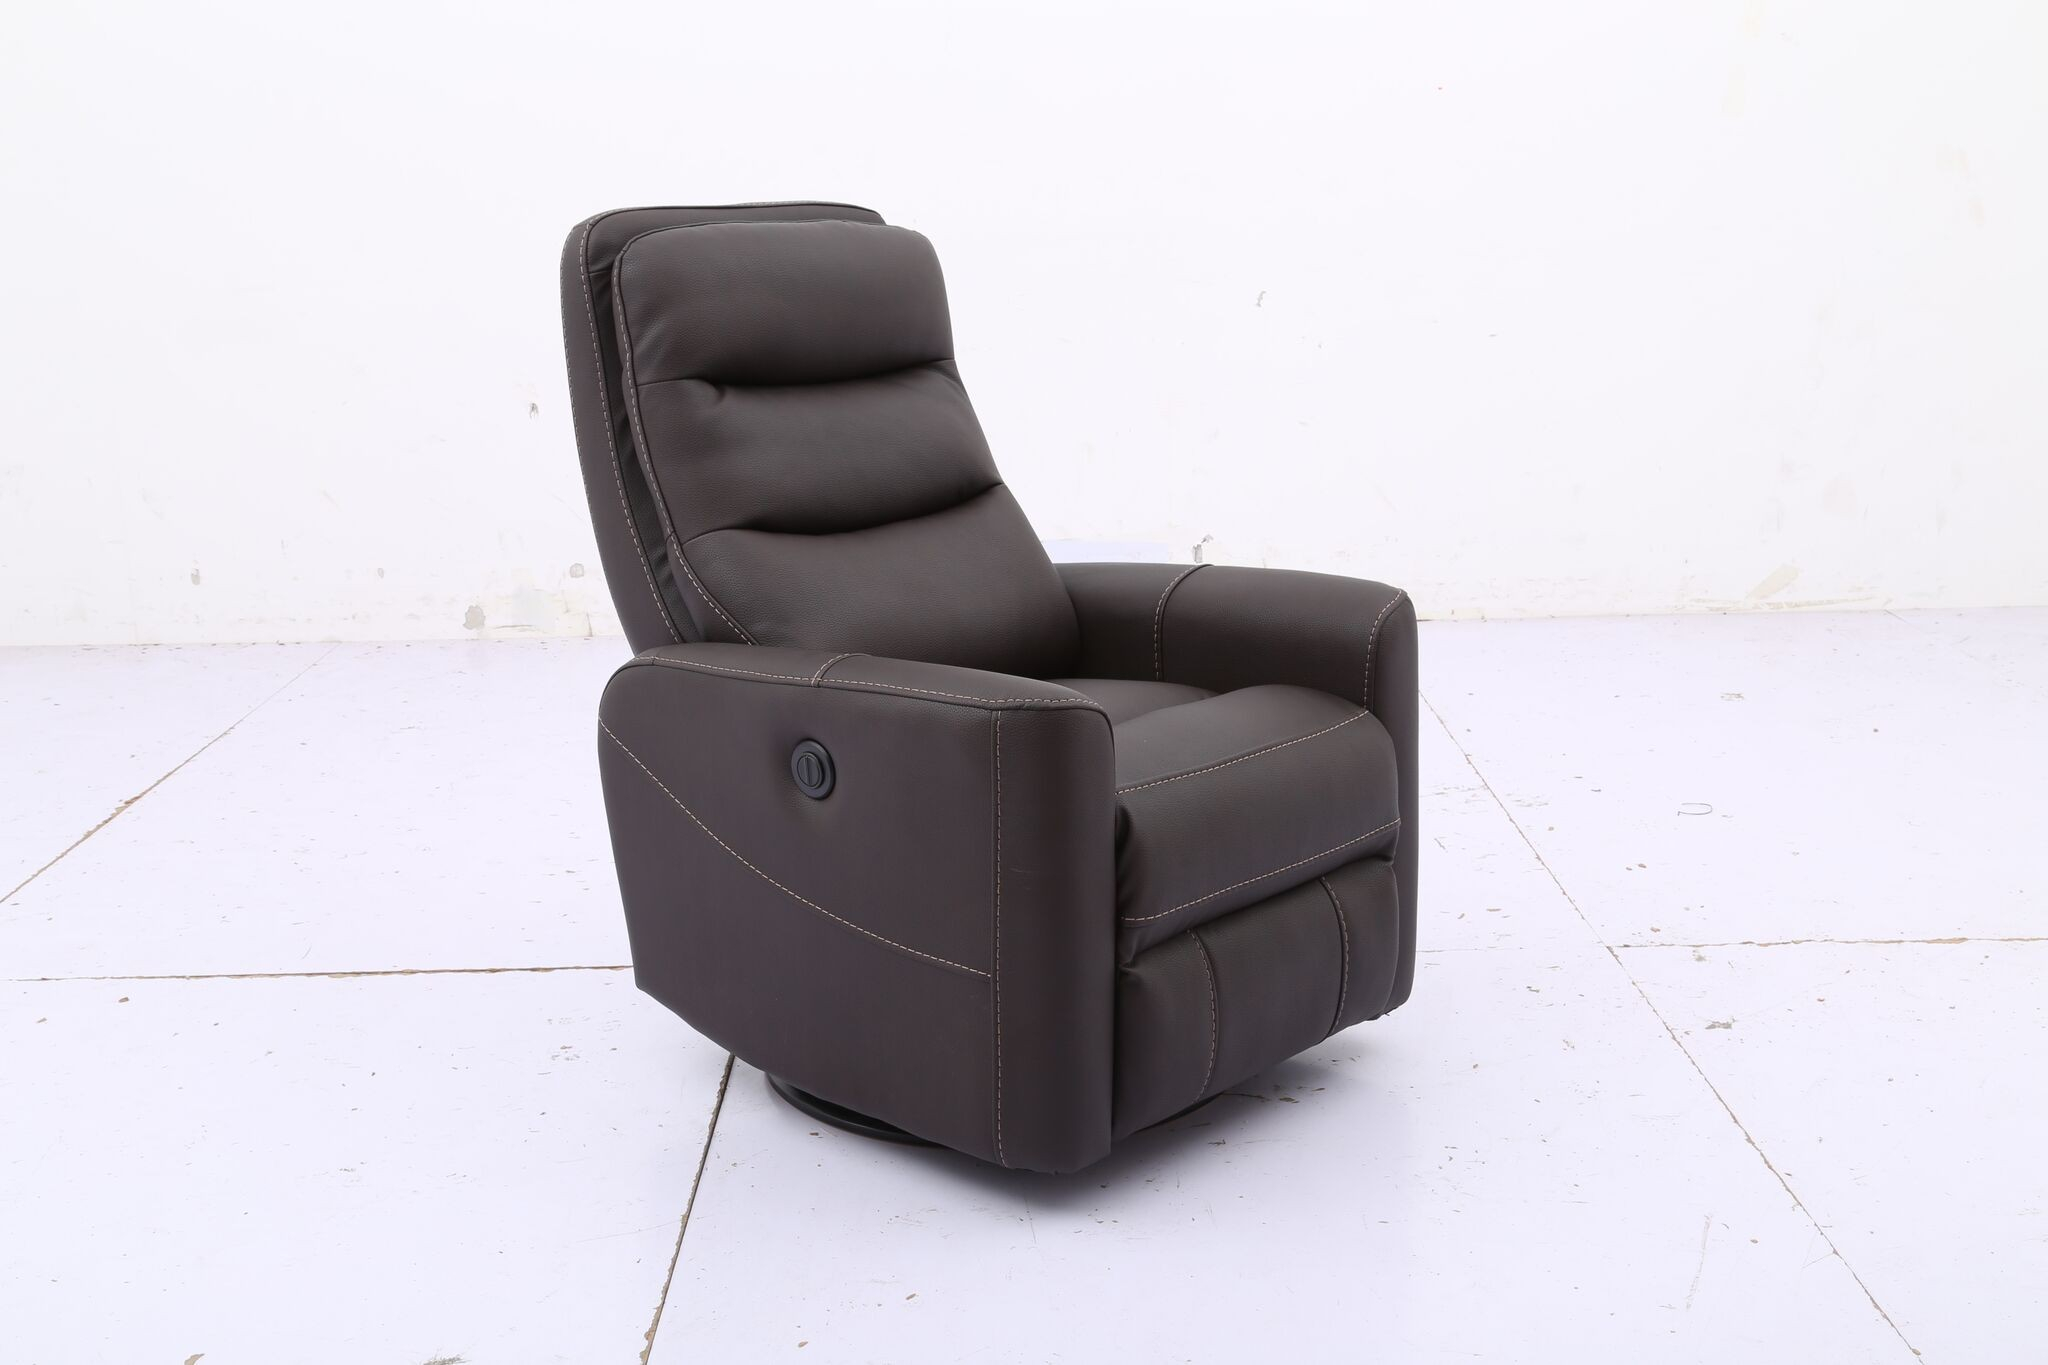 Hercules -Chocolate- Swivel Power Recliner for Hercules Oyster Swivel Glider Recliners